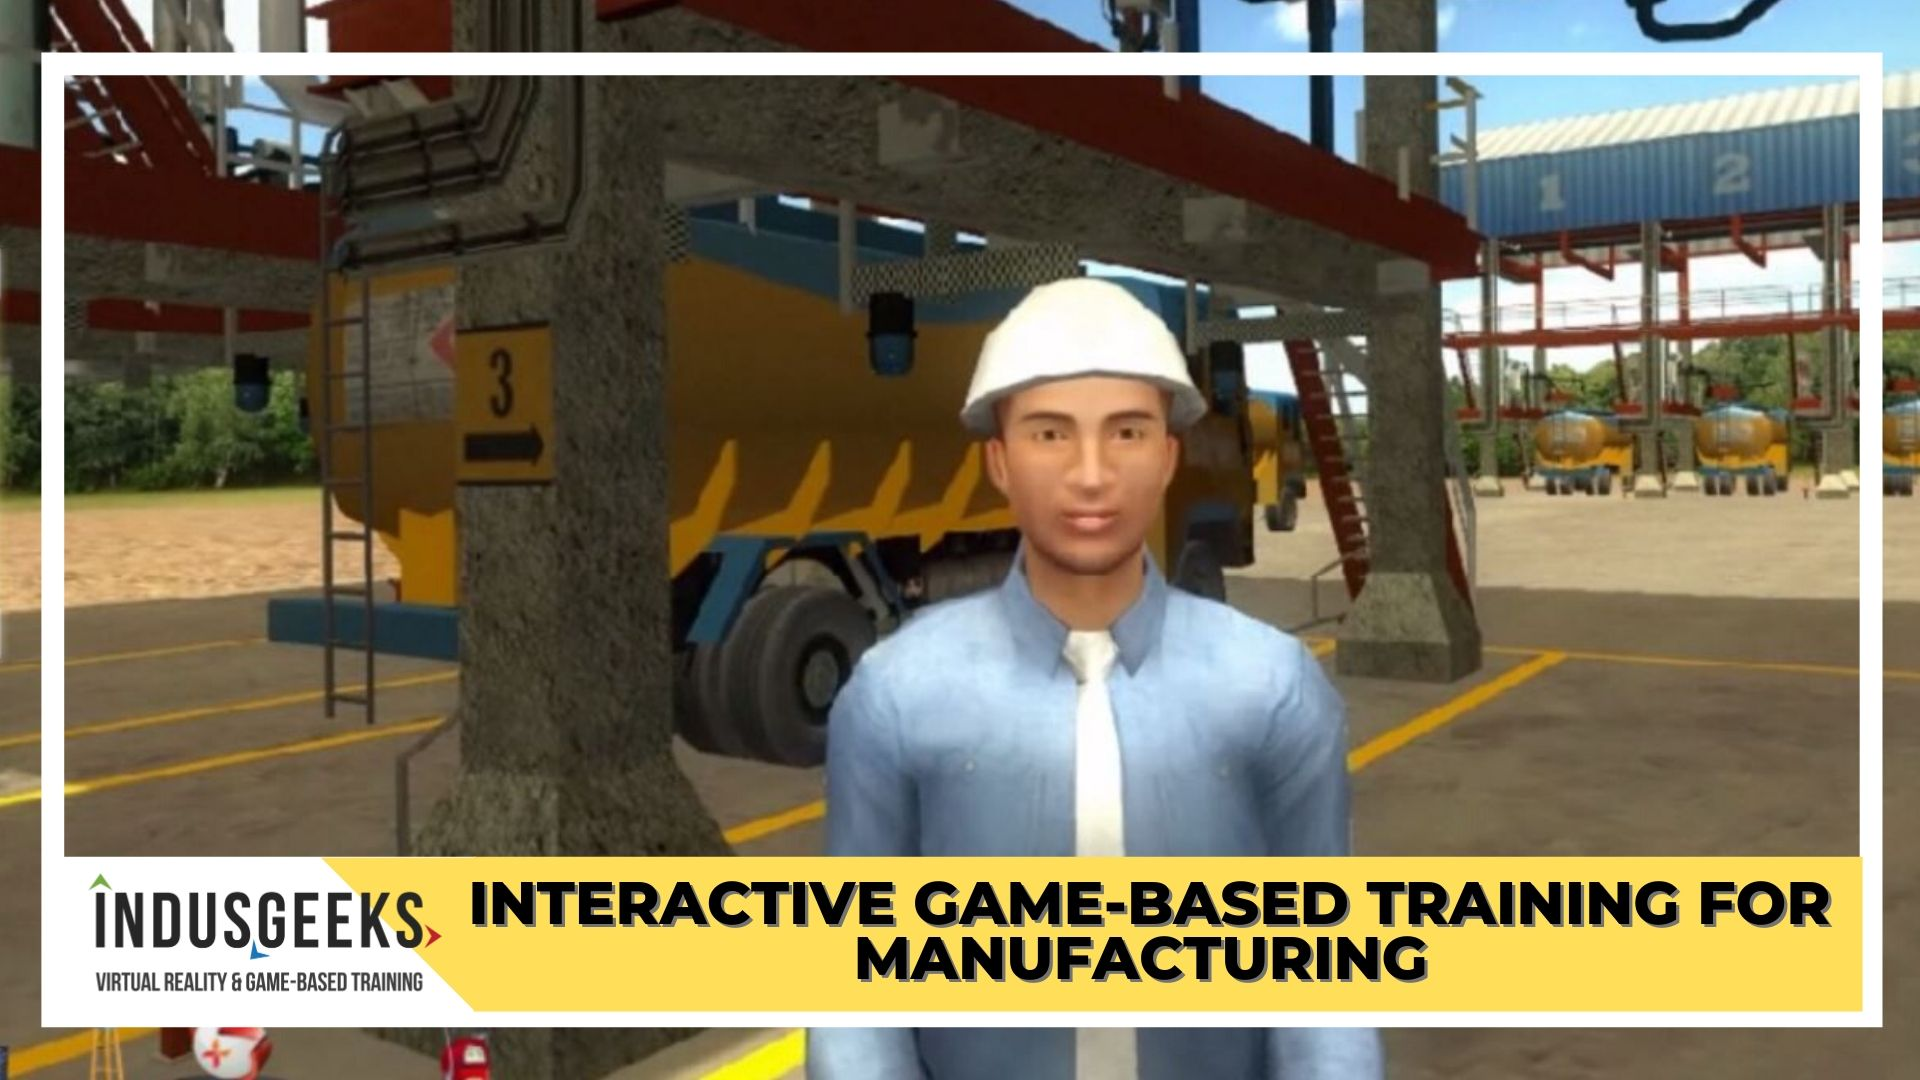 Interactive game-based training for manufacturing